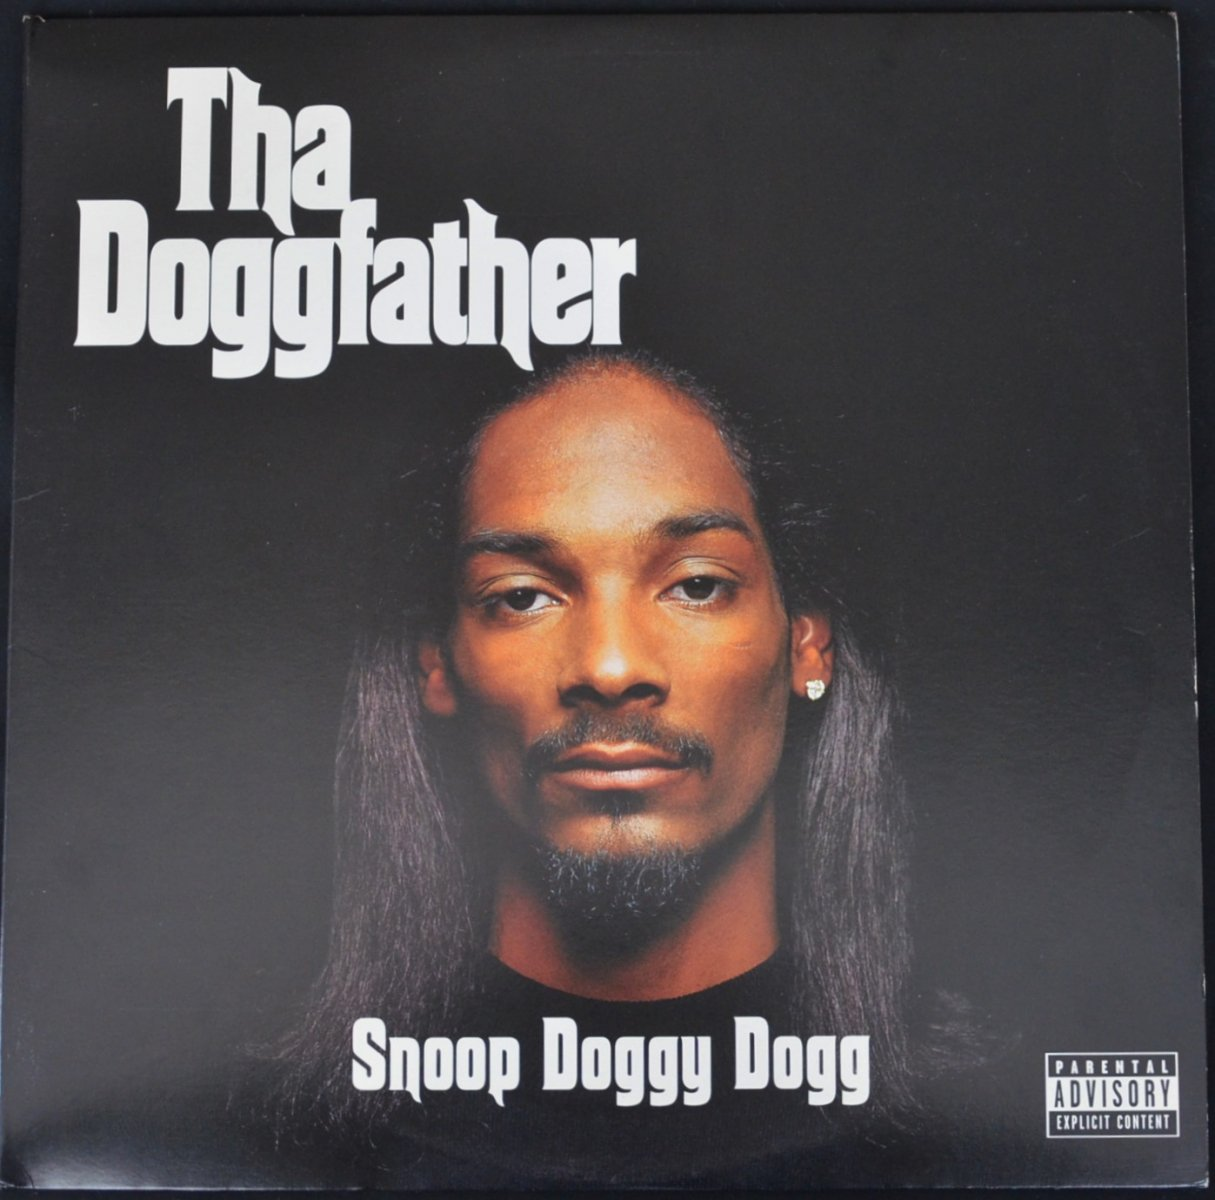 SNOOP DOGGY DOGG / THA DOGGFATHER (2LP)